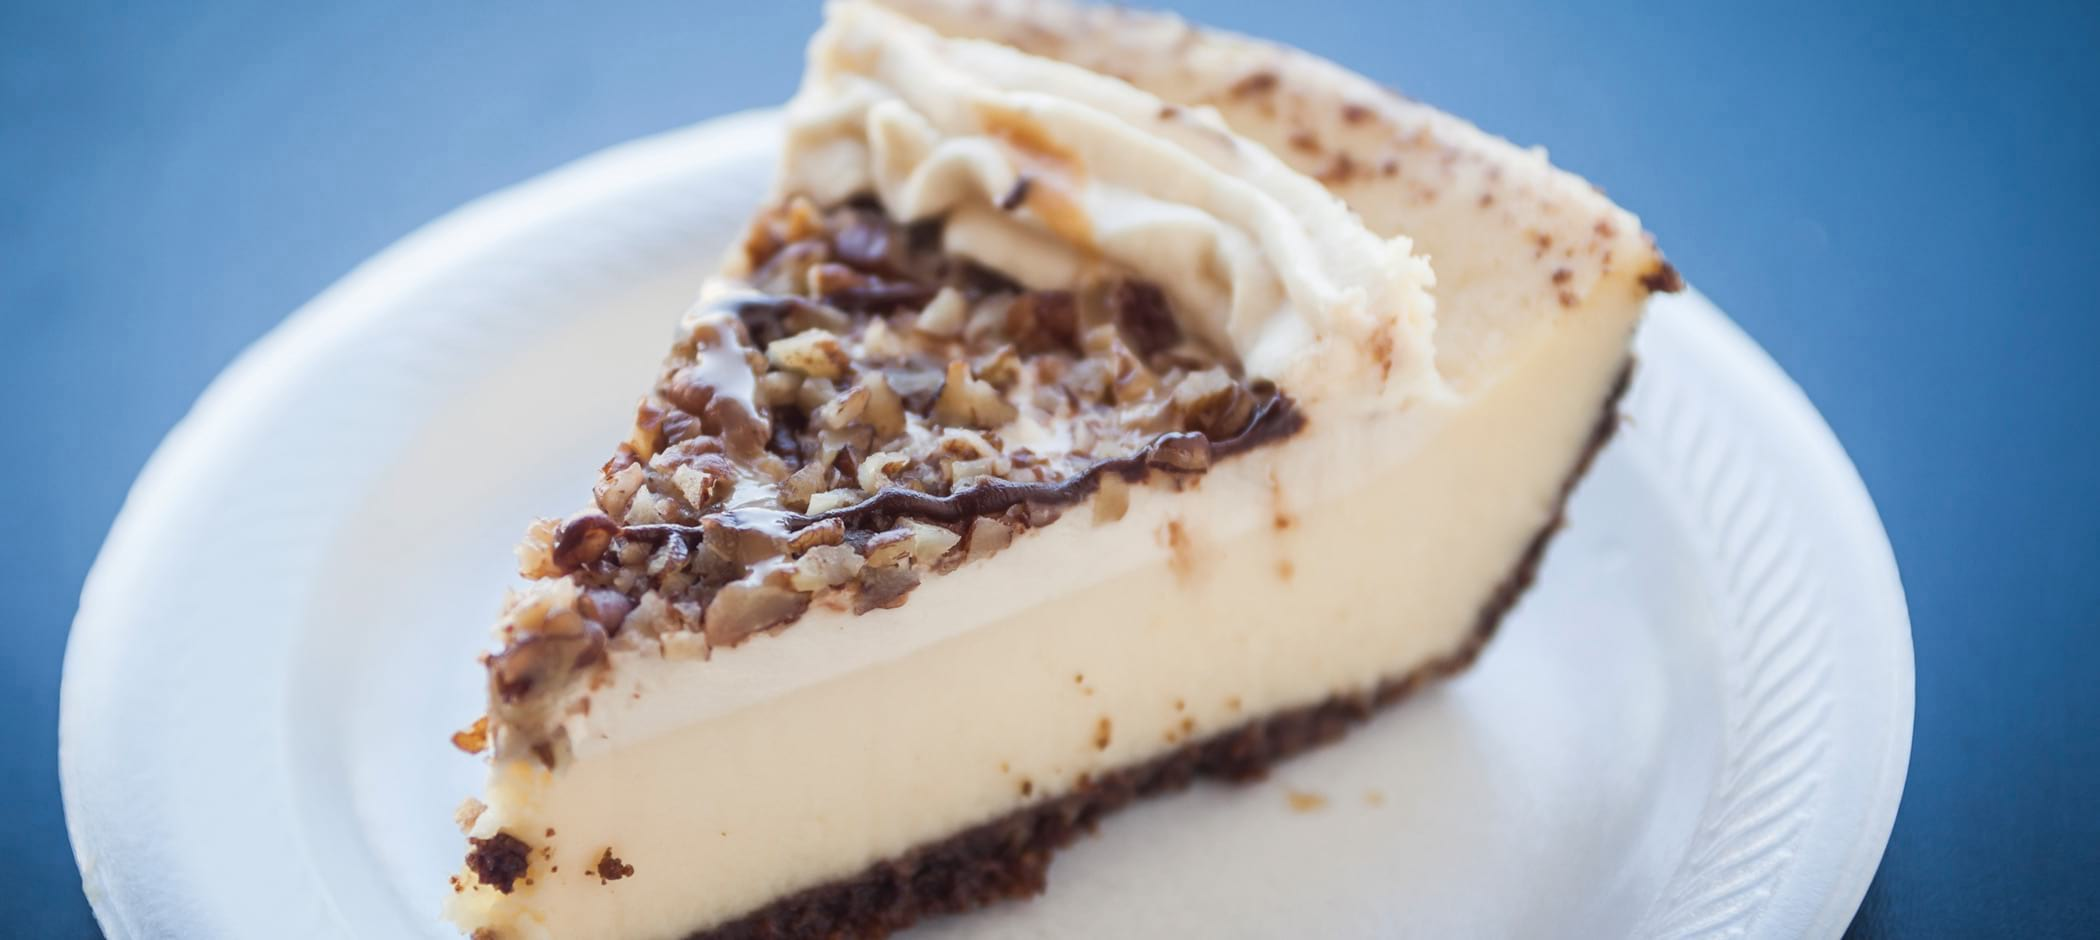 Peteet's Famous Cheesecakes chocolate